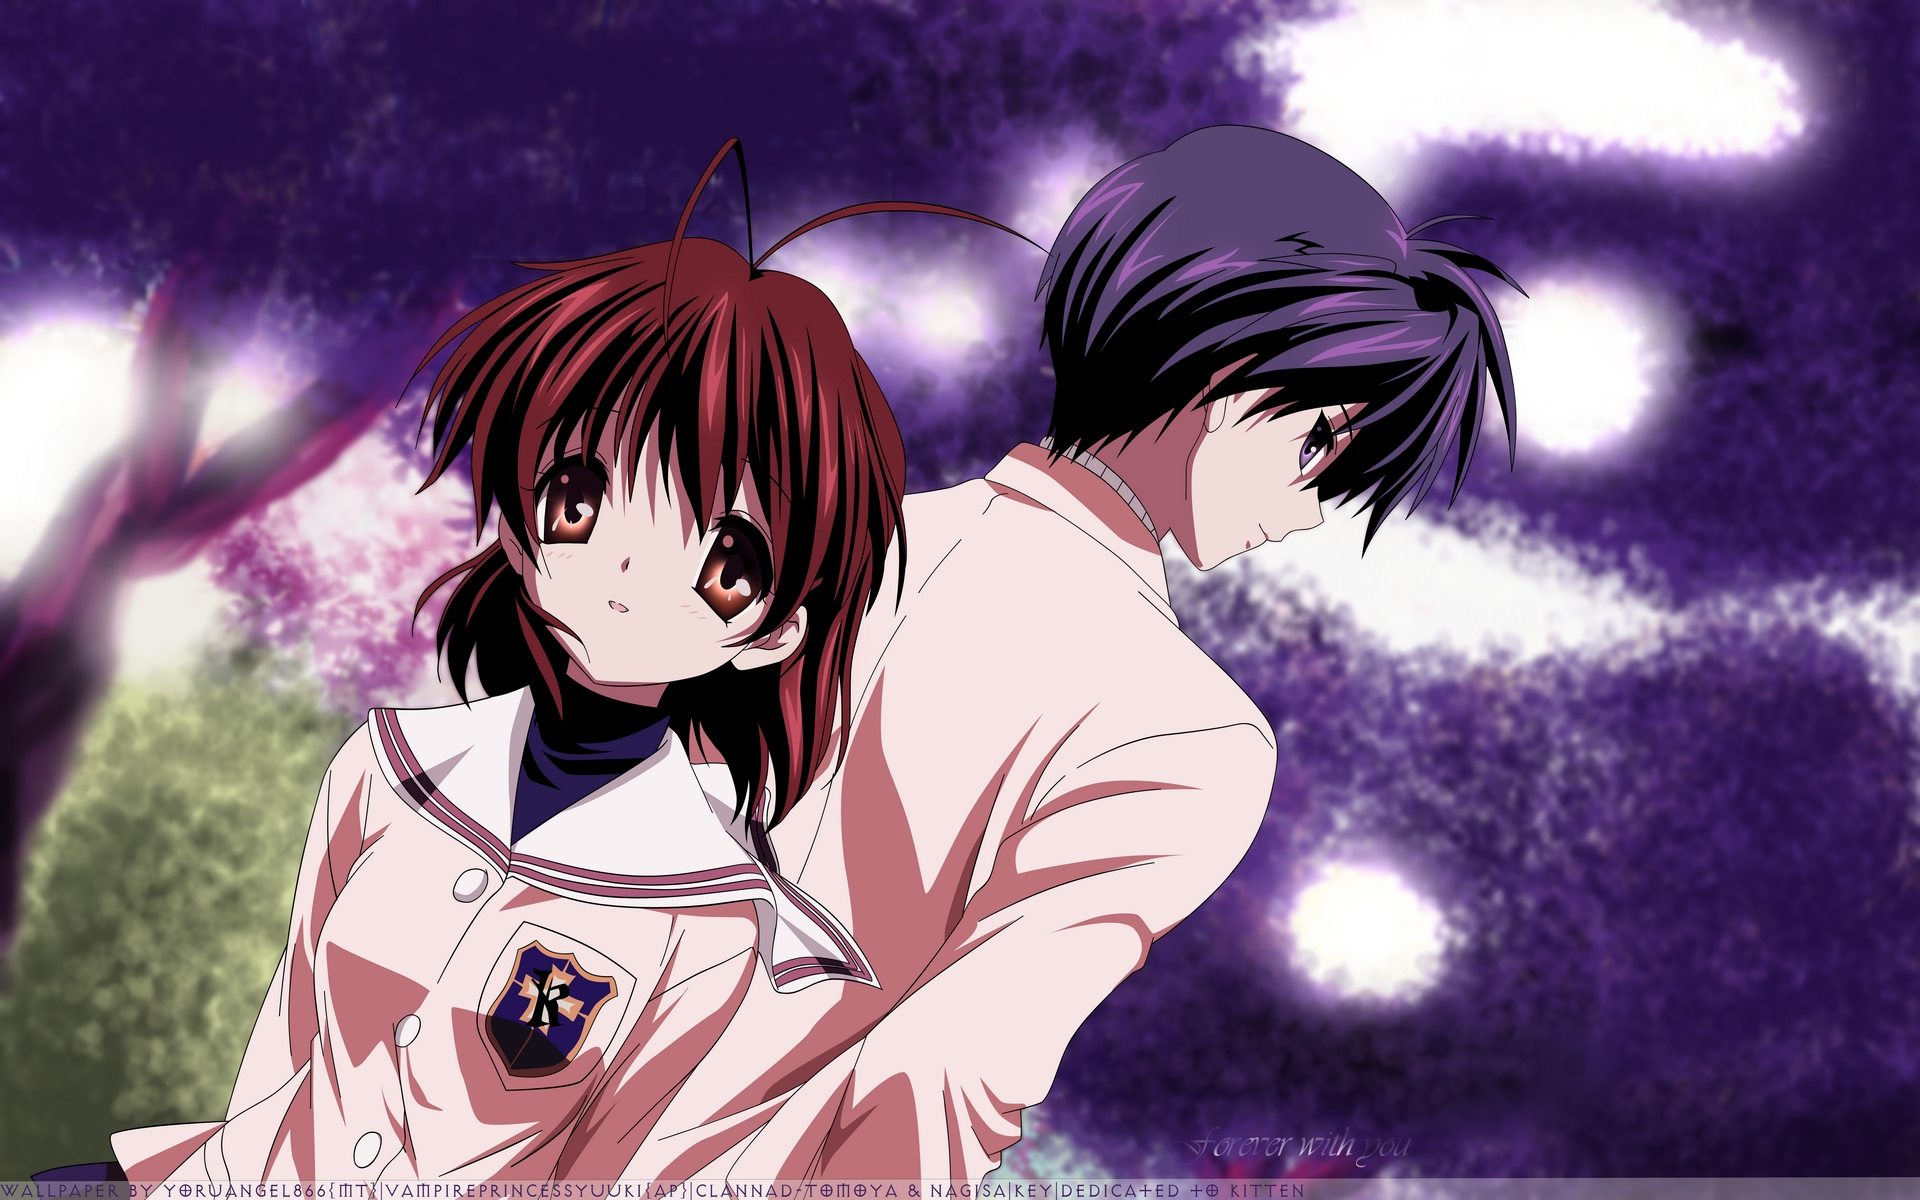 Clannad Wallpaper: Forever with you... - Minitokyo